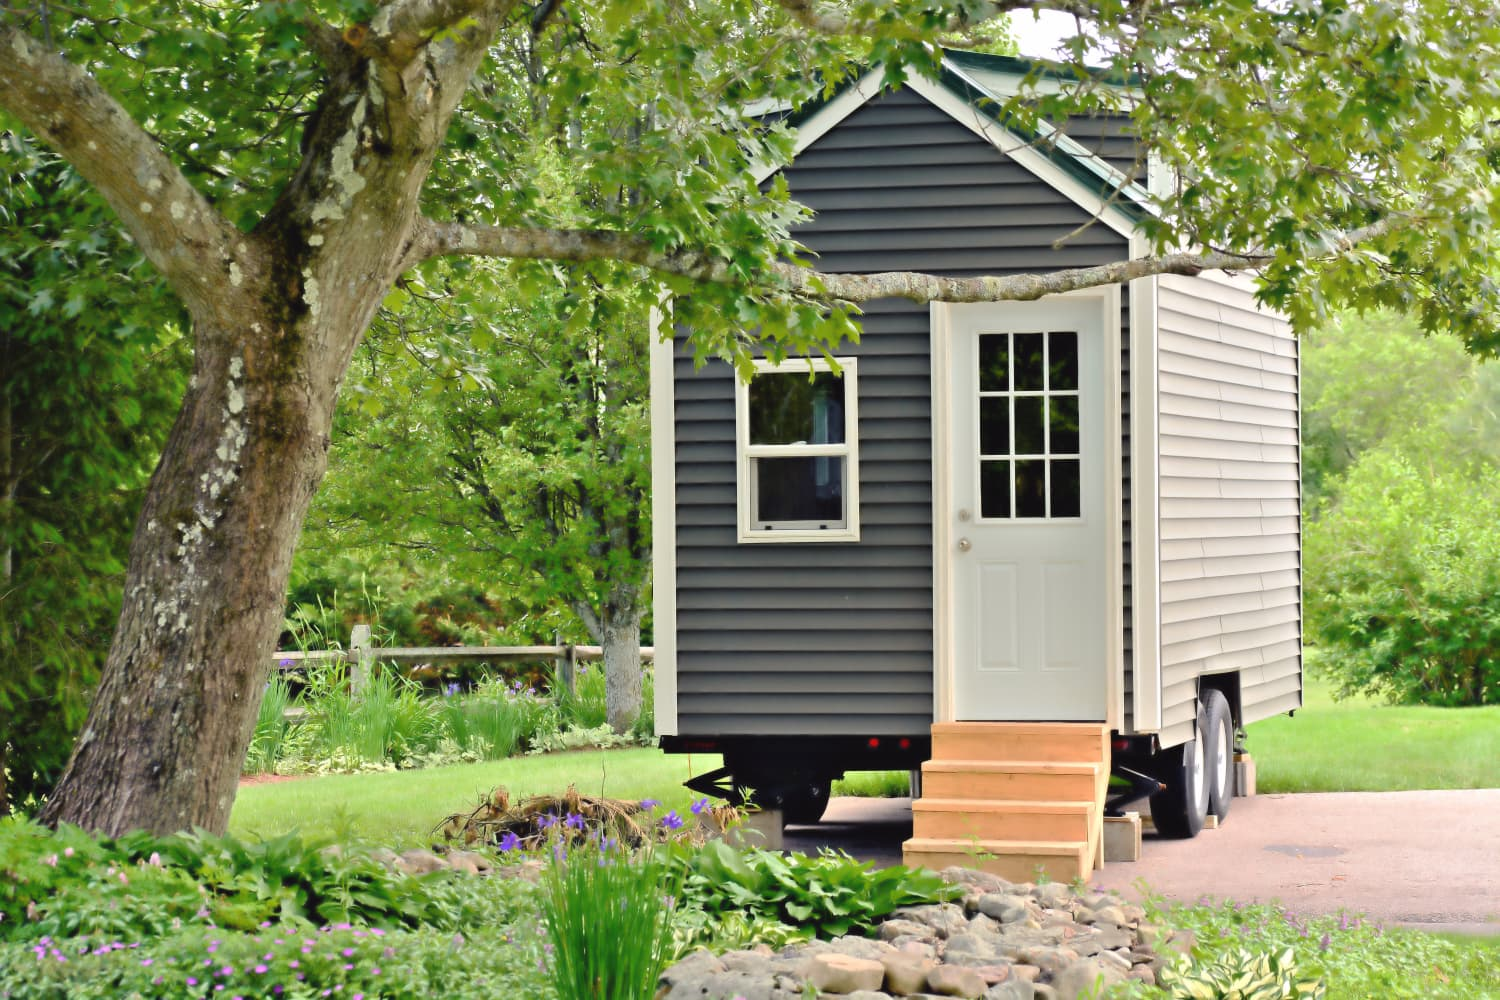 Tiny Homes on Wheels Have One Not-So-Tiny Problem: Theft